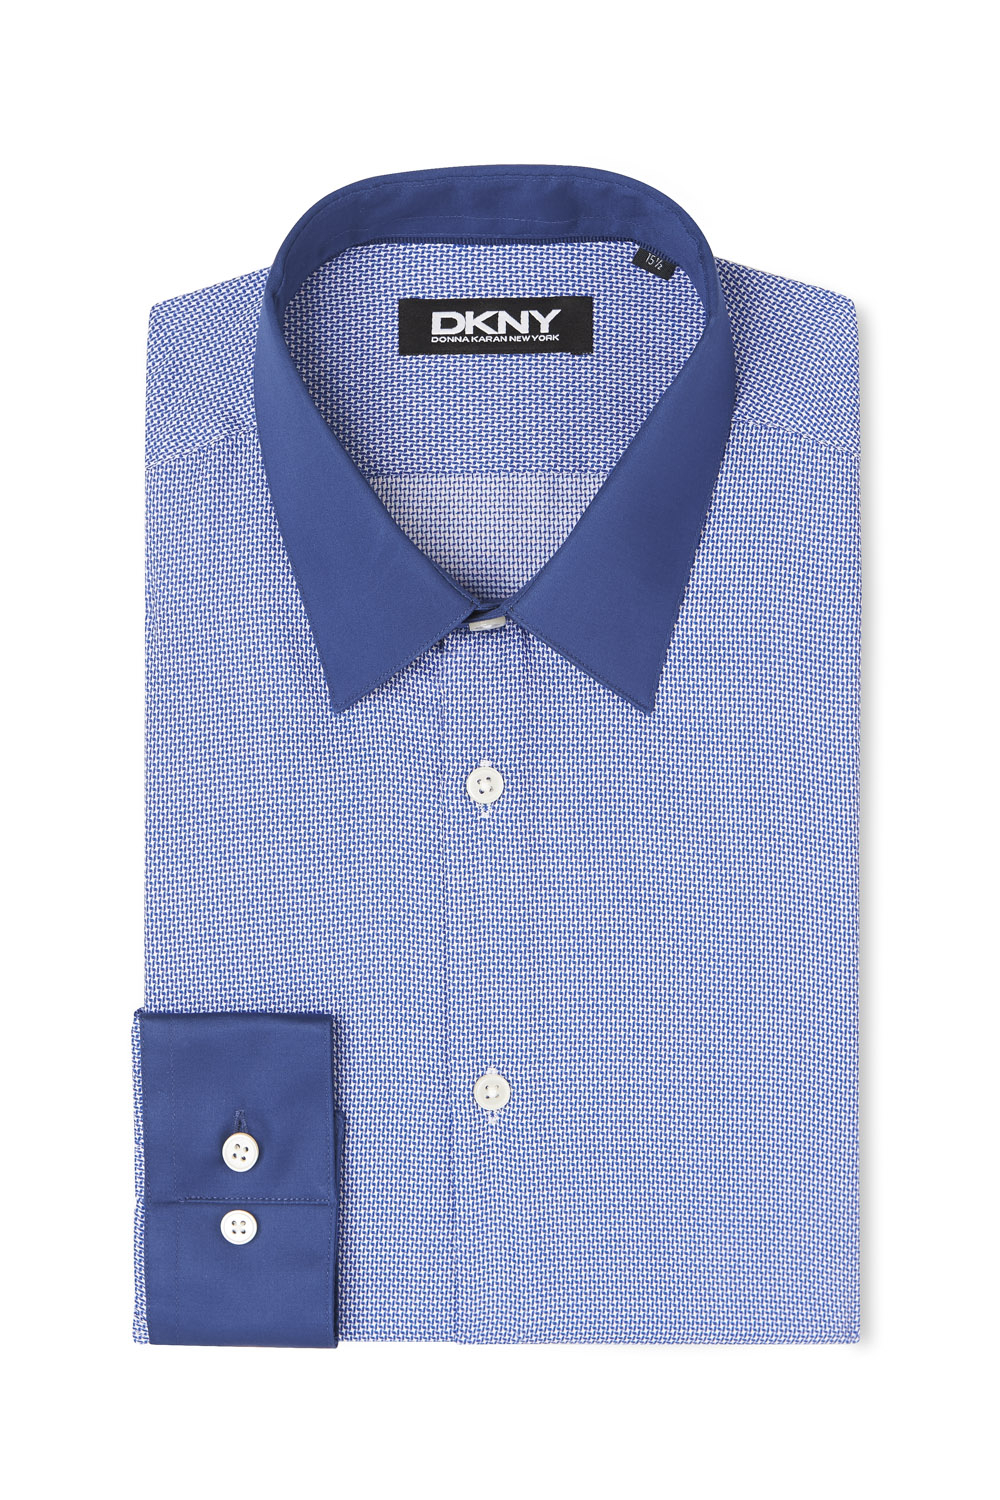 Dkny slim fit navy single cuff contrast collar and cuff for Mens dress shirts with contrasting collars and cuffs